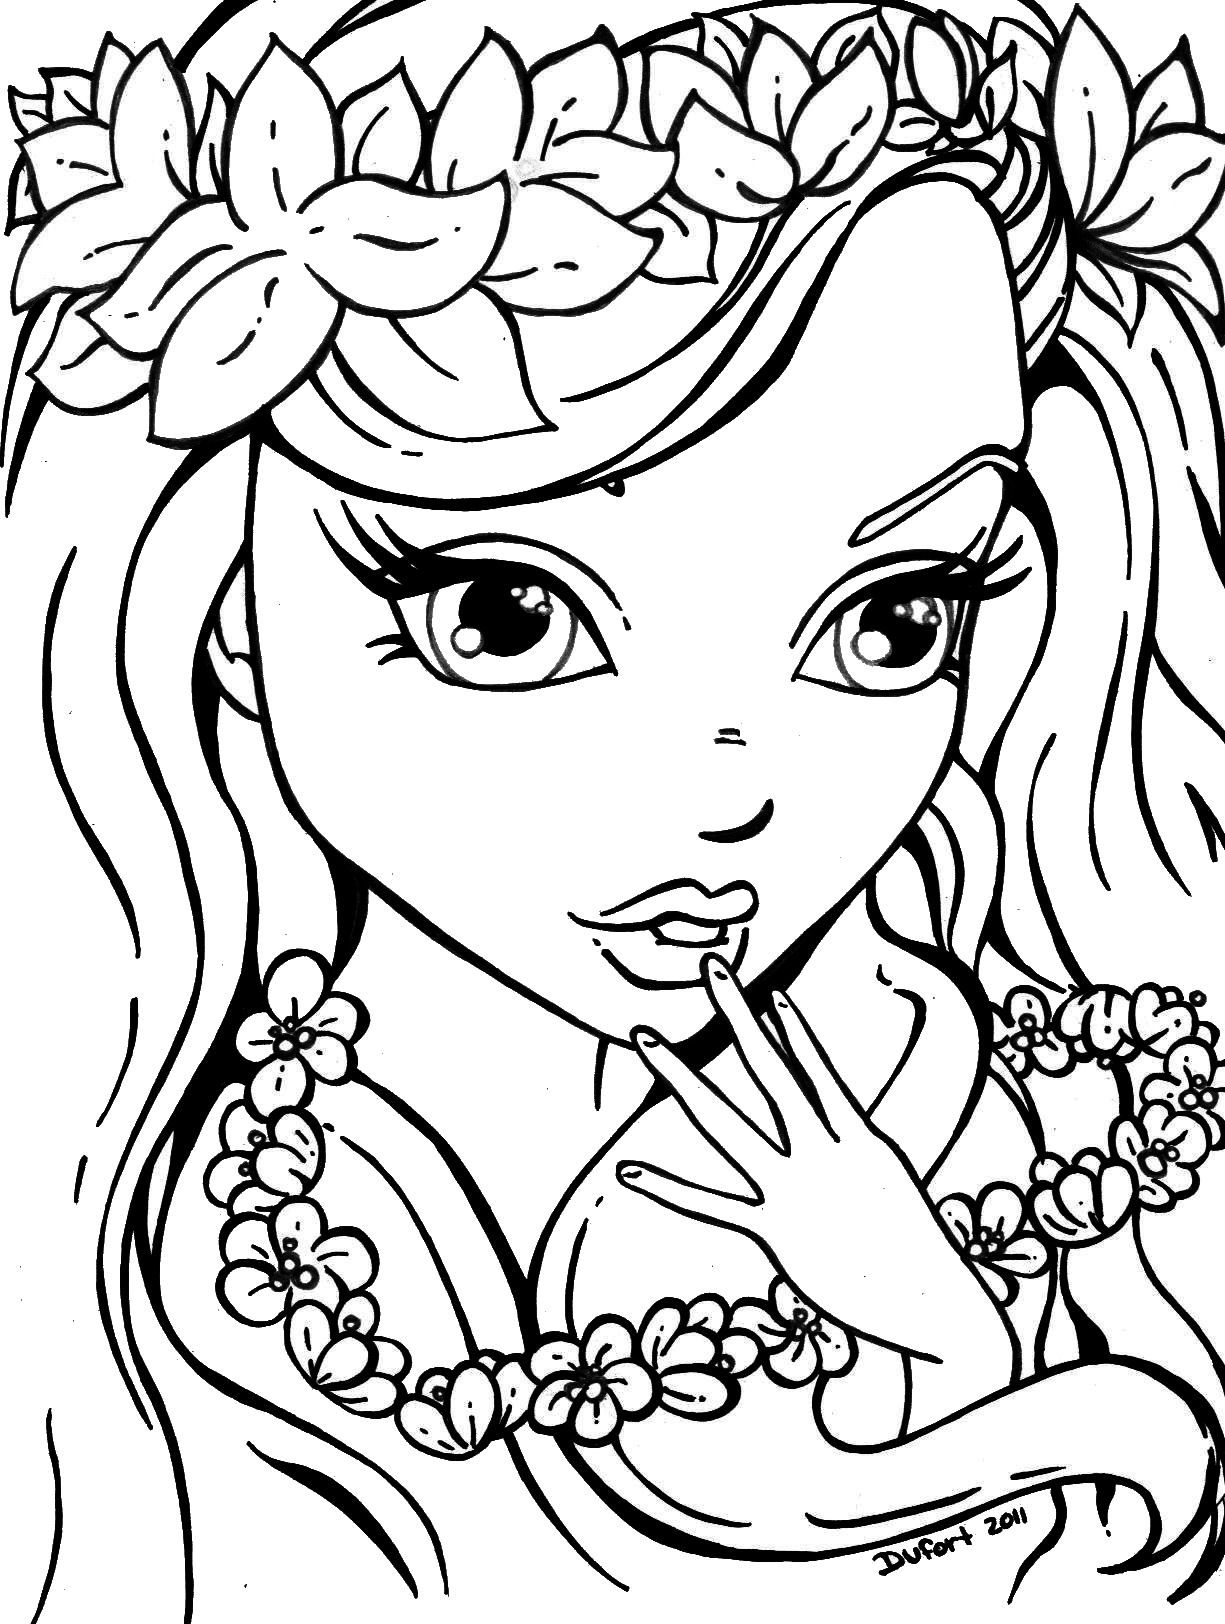 25 coloring pages for girls compilation - Free Coloring Pages For Girls 2